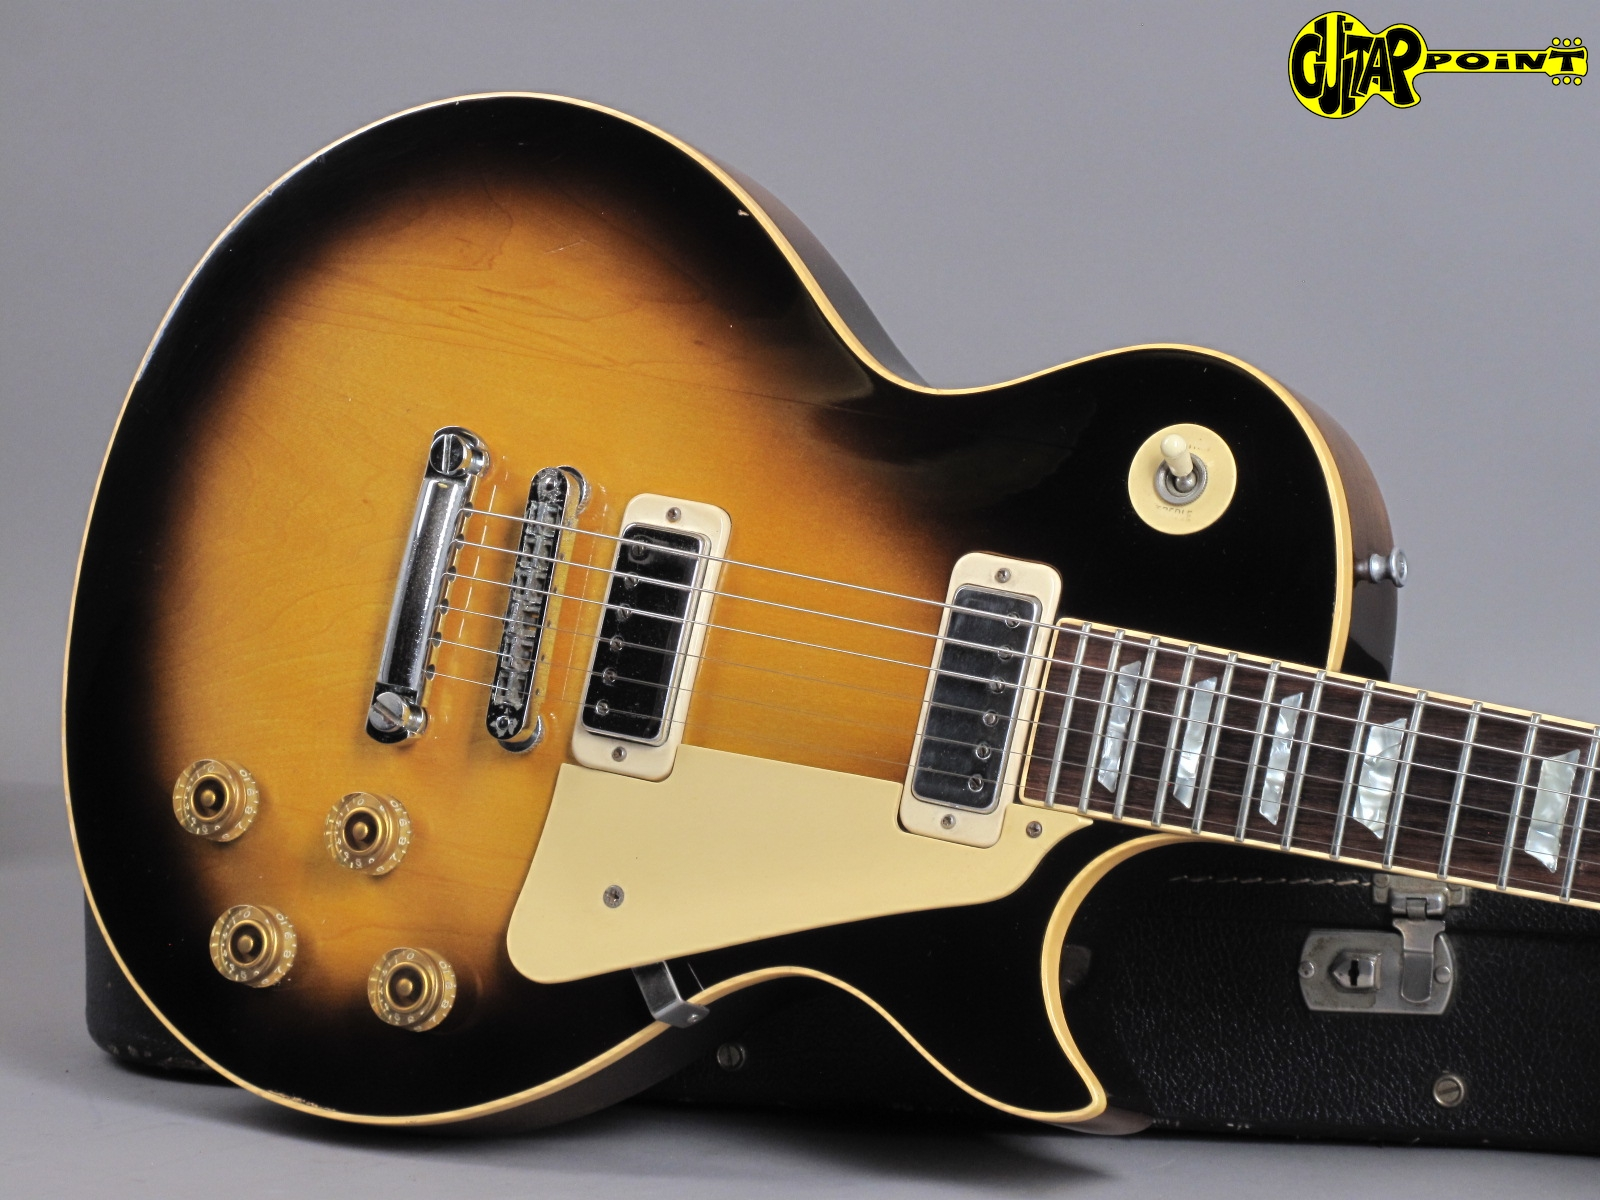 https://guitarpoint.de/app/uploads/products/1980-gibson-les-paul-deluxe-tobacco-sunburst/Gibson80LPDLSB81130592_19.jpg